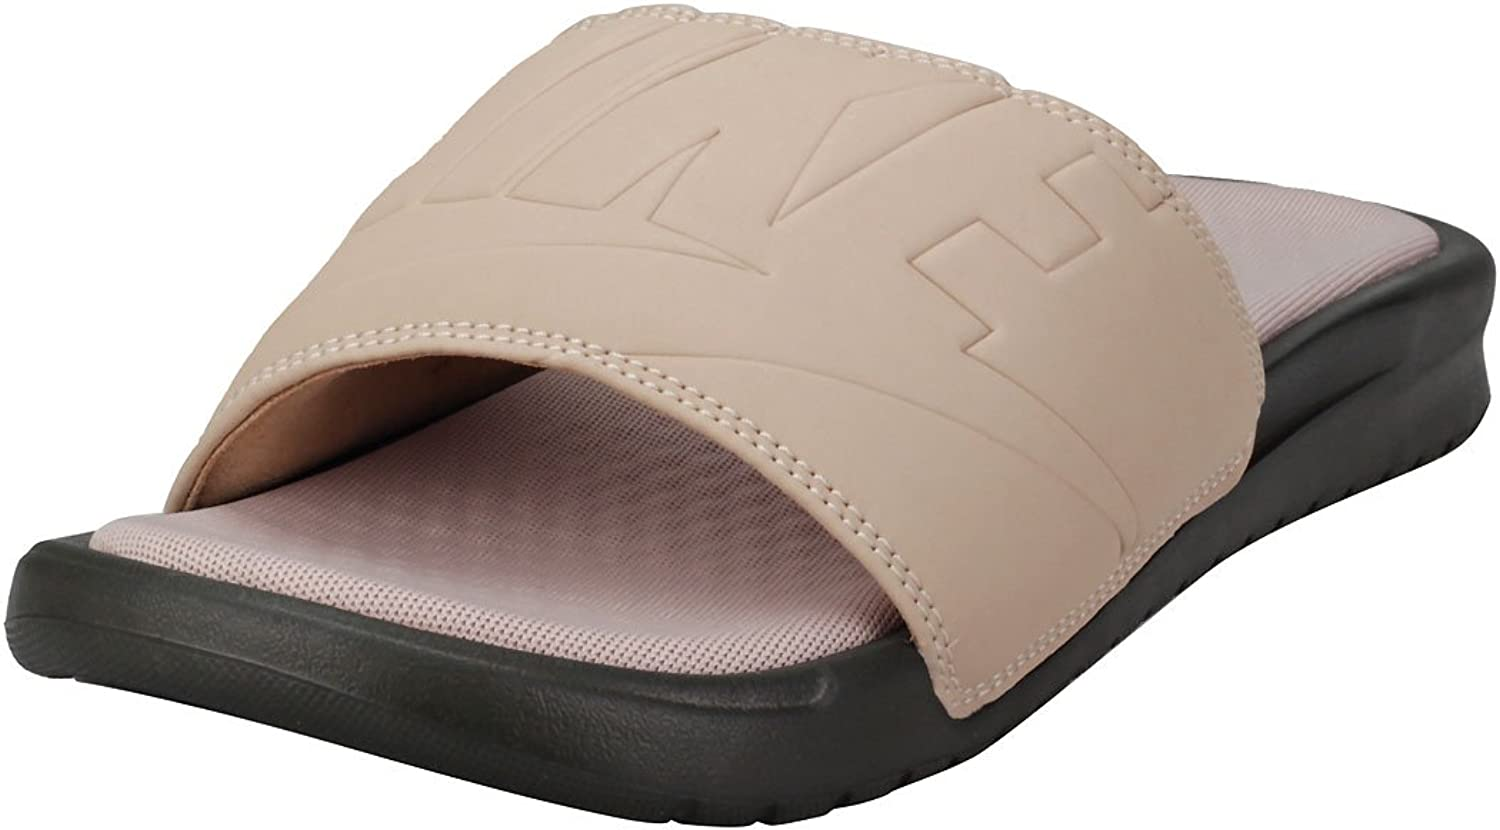 Nike Benassi JDI Ultra Se Mens Slide Sand - 7 UK